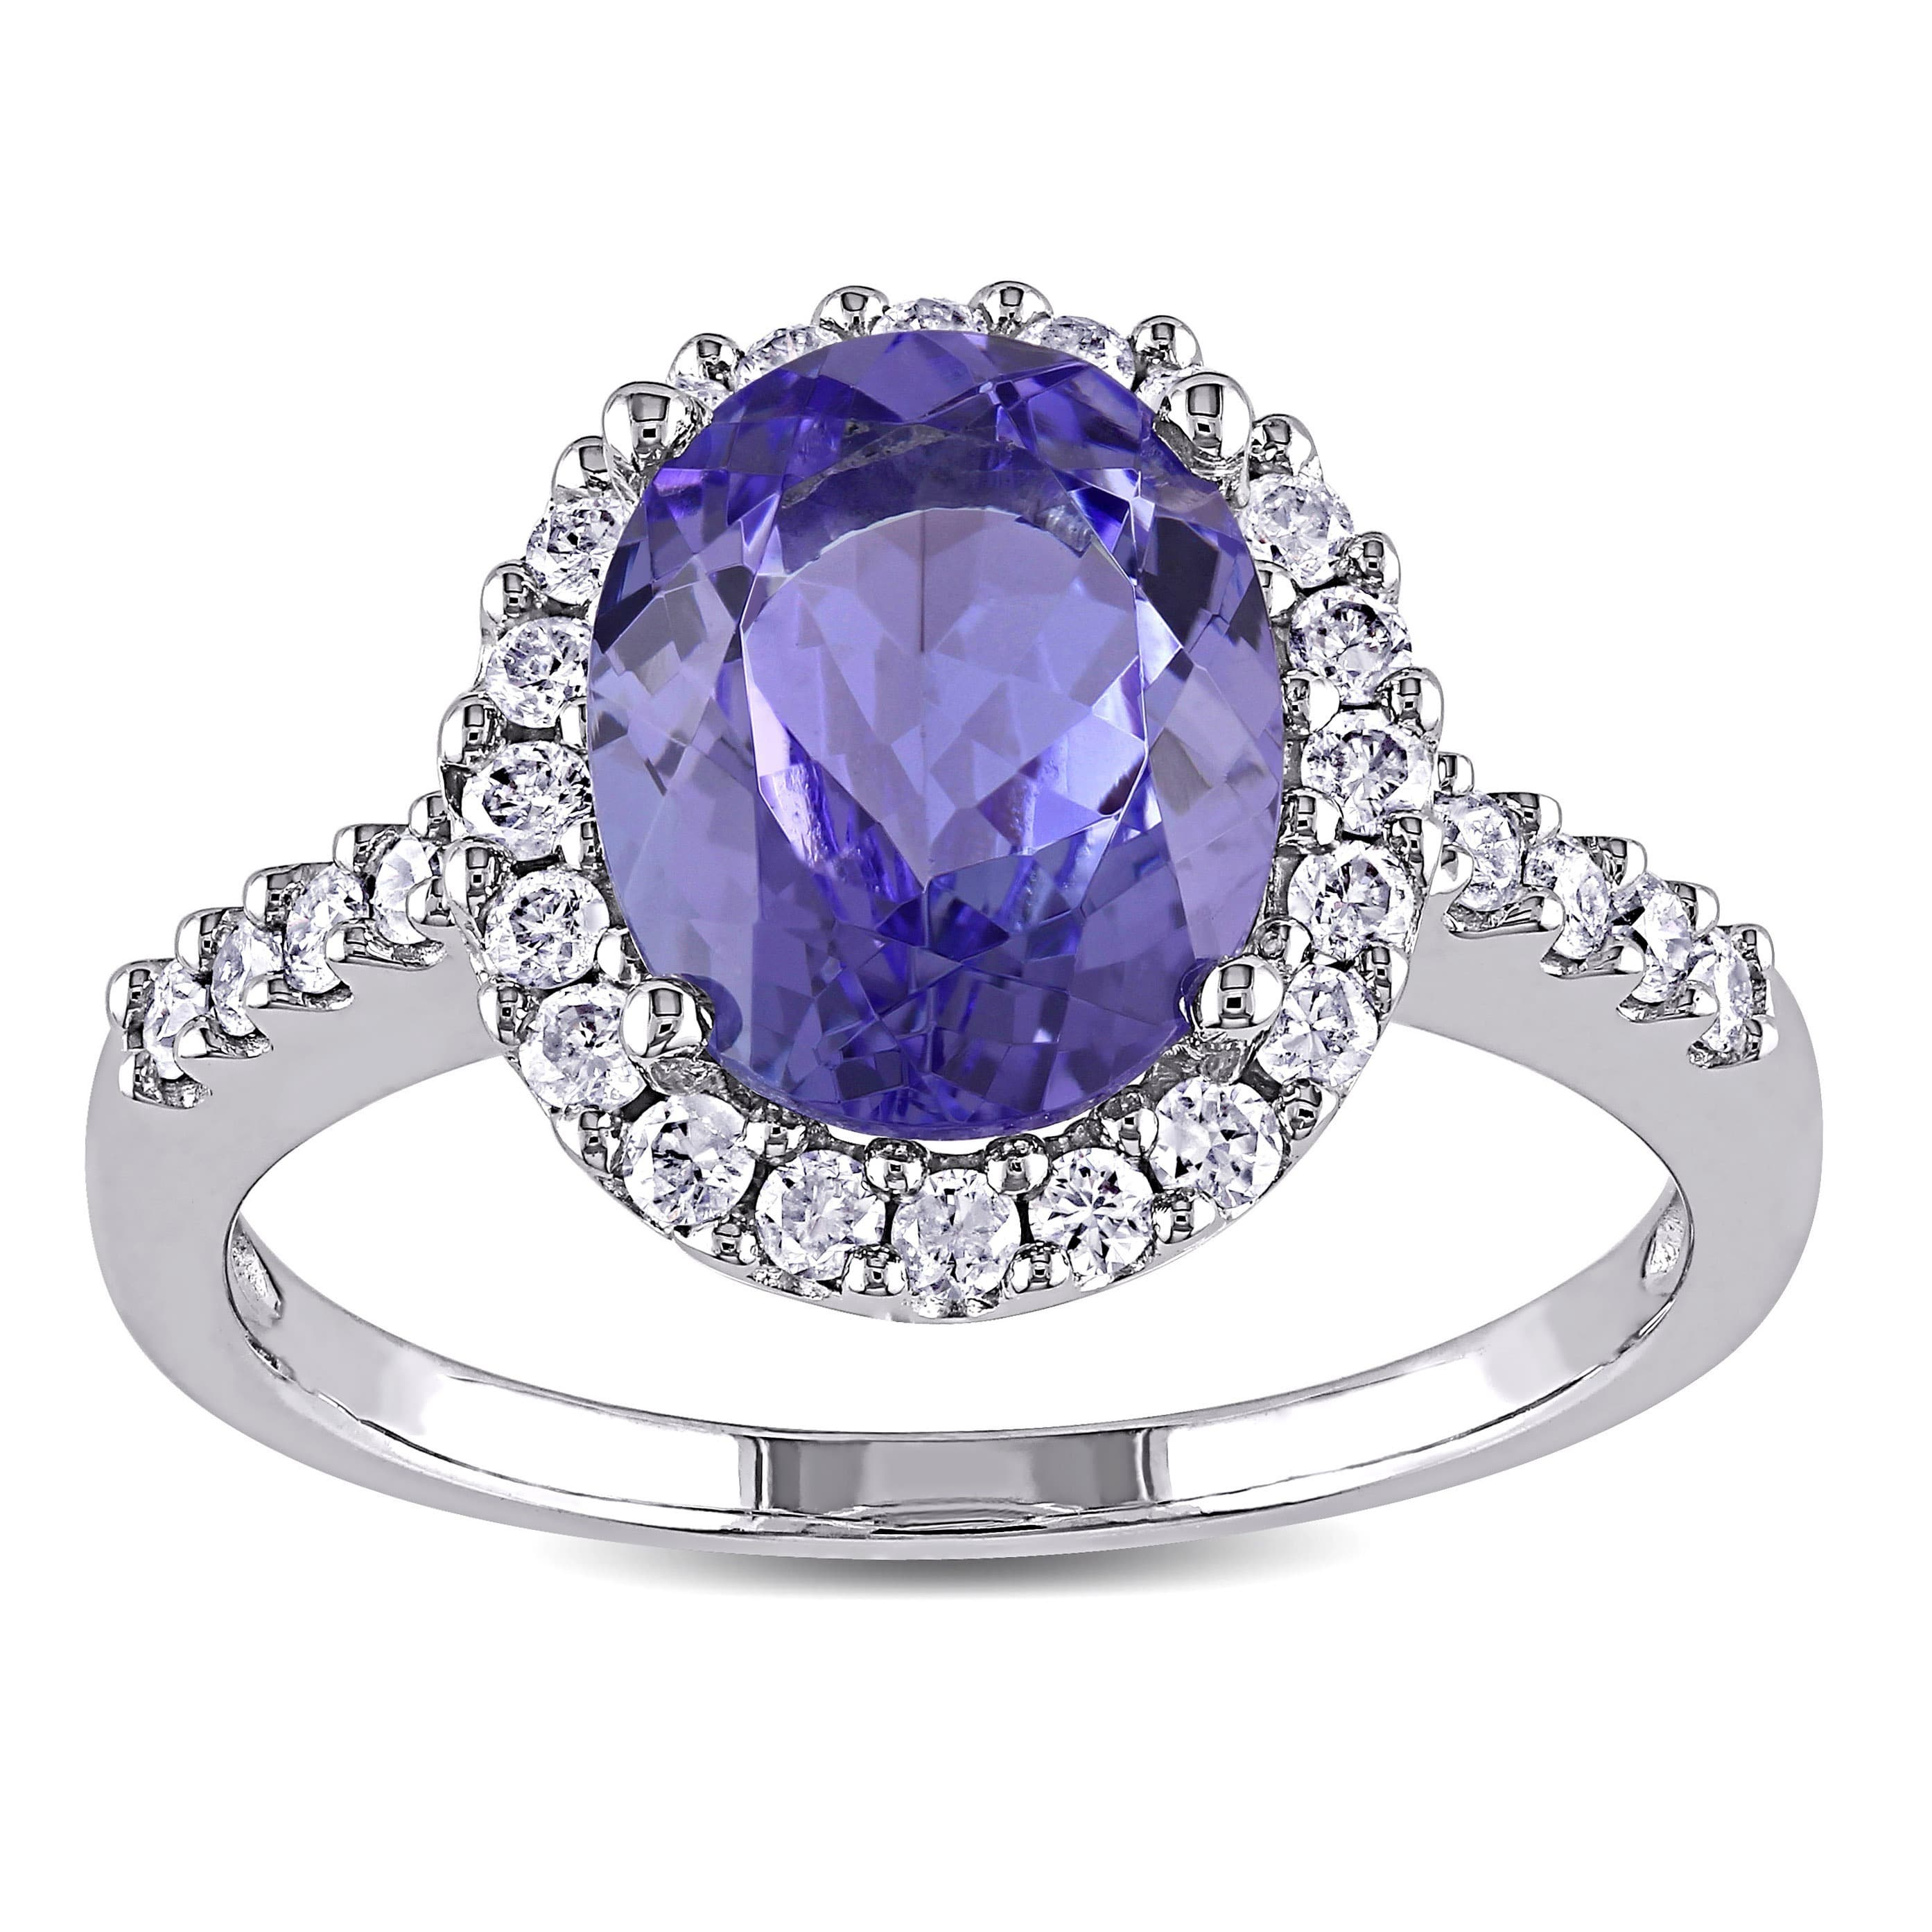 Miadora Signature Collection 14k White Gold Tanzanite and 2 5ct TDW Diamond Halo Ring (G-H, I1-I2) by Overstock